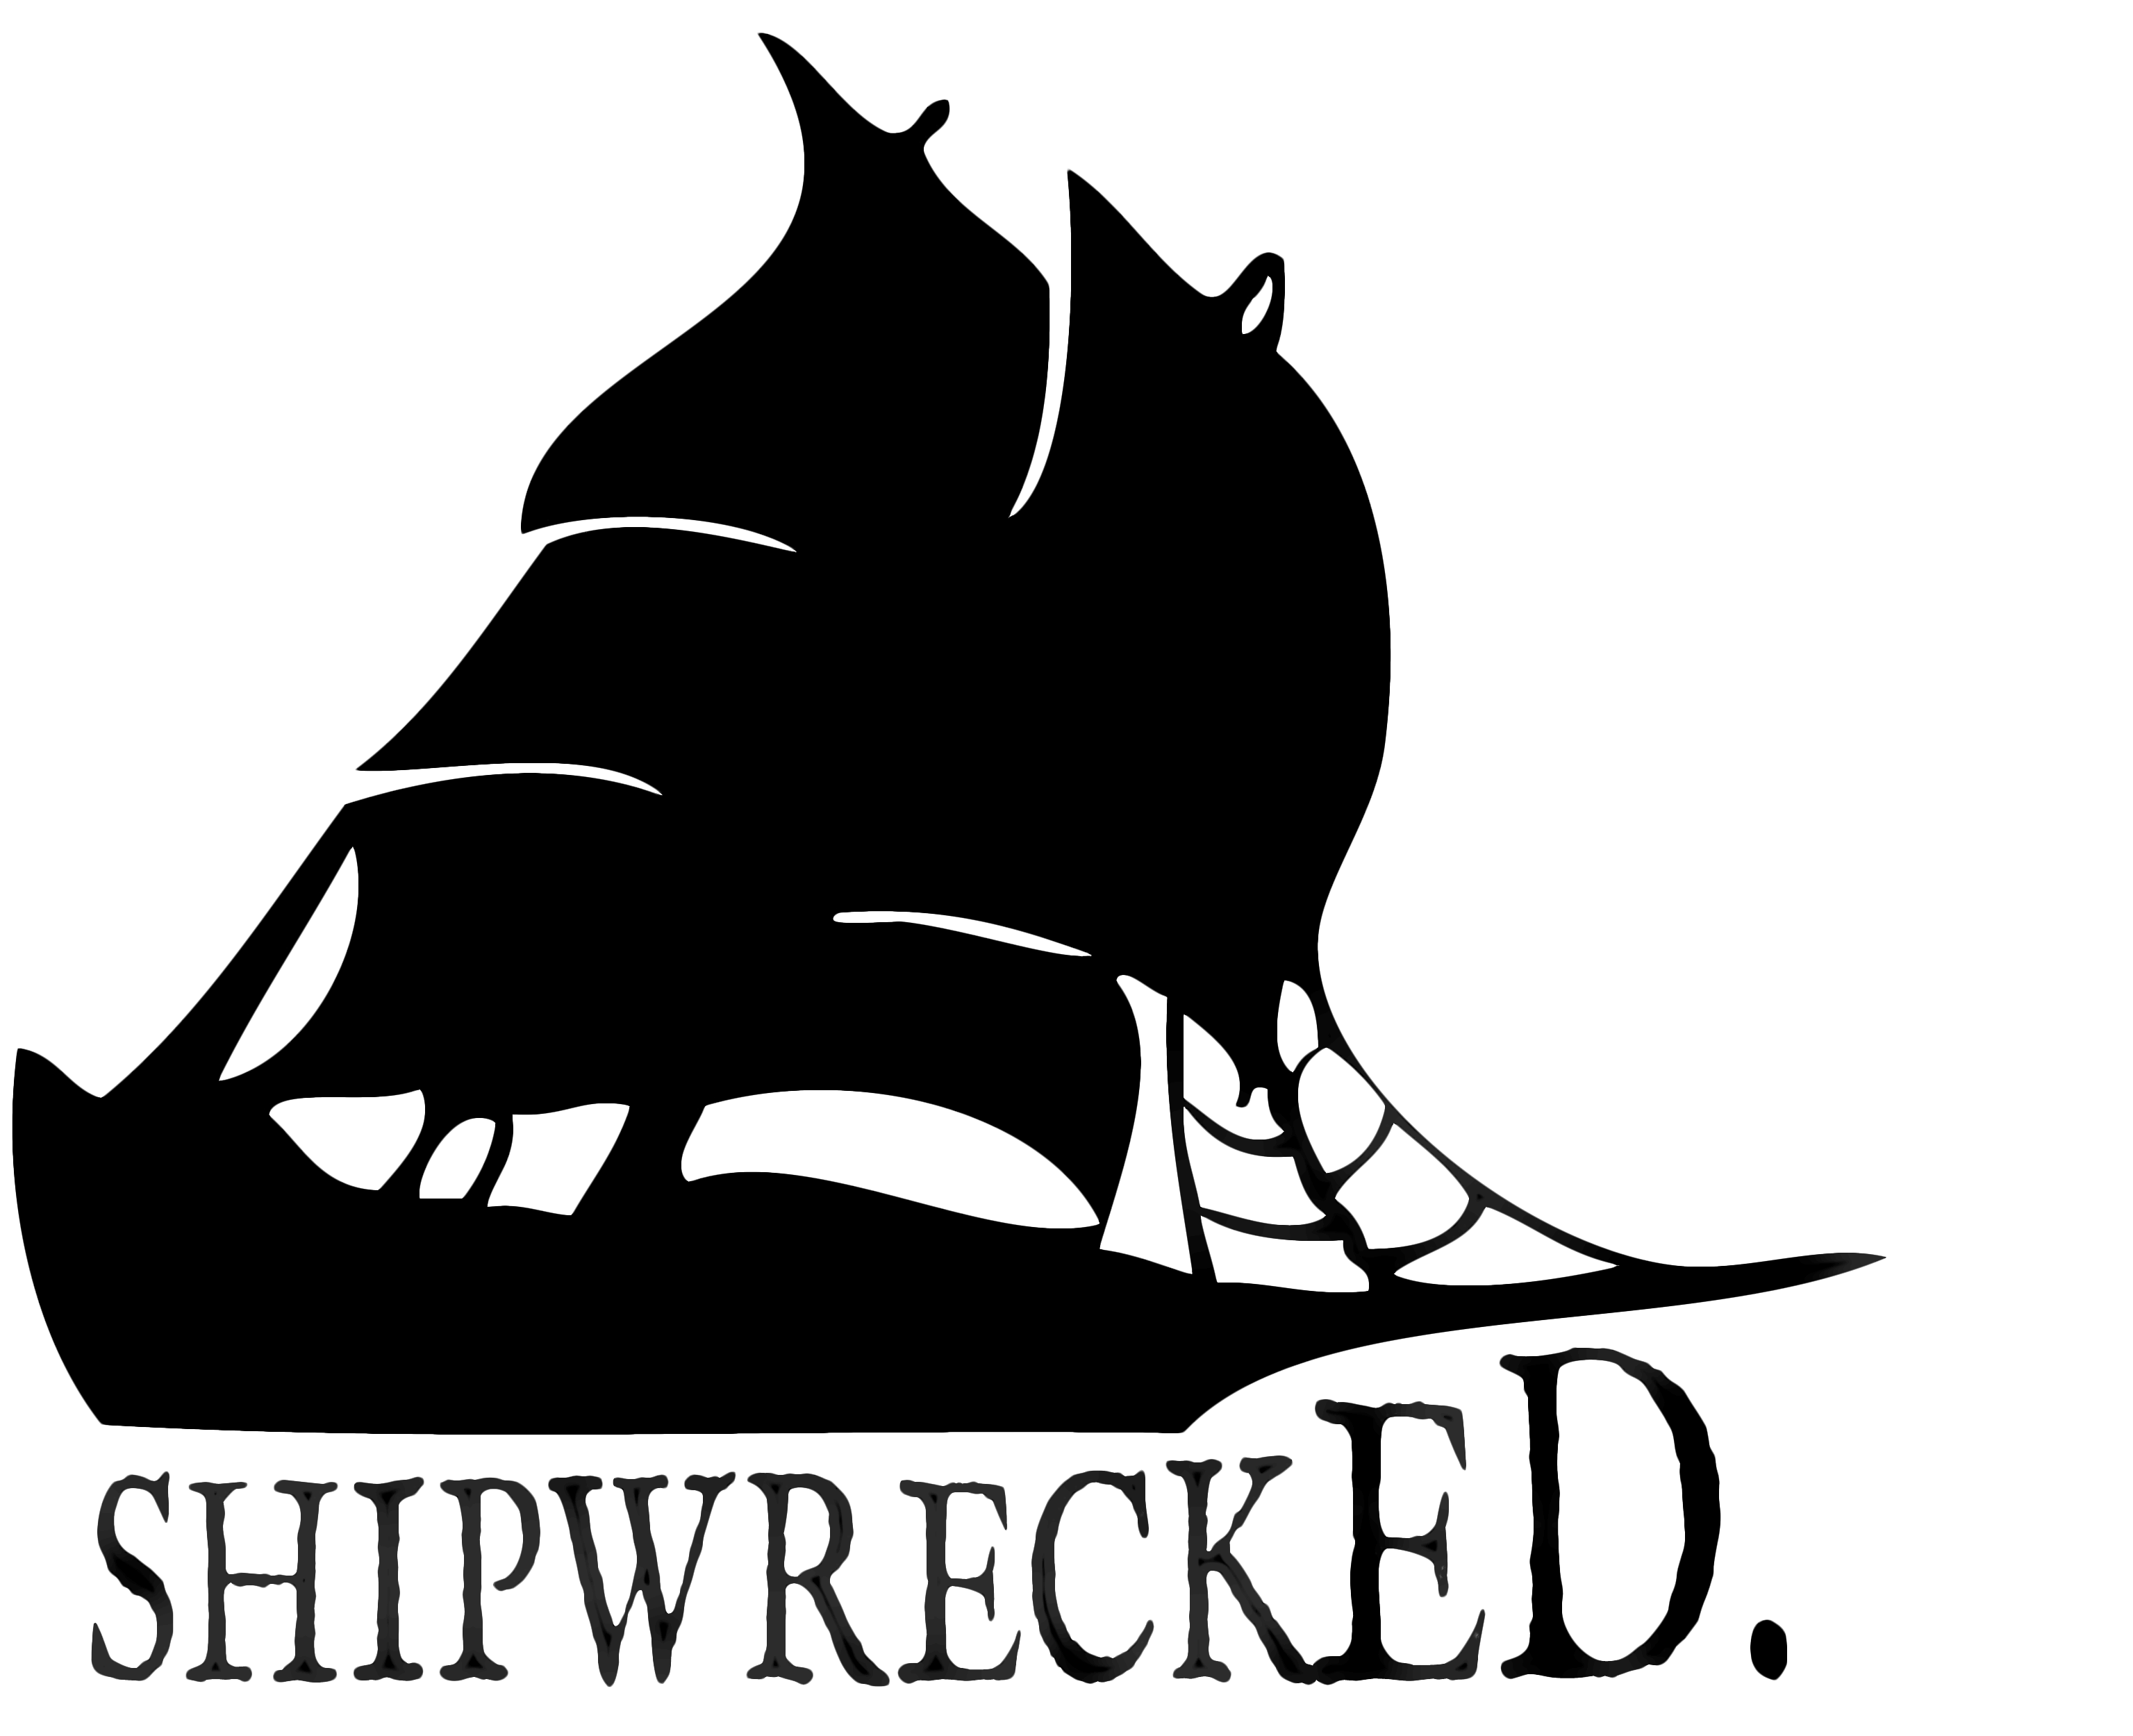 Clipart boat shipwrecked. Creation myth logo